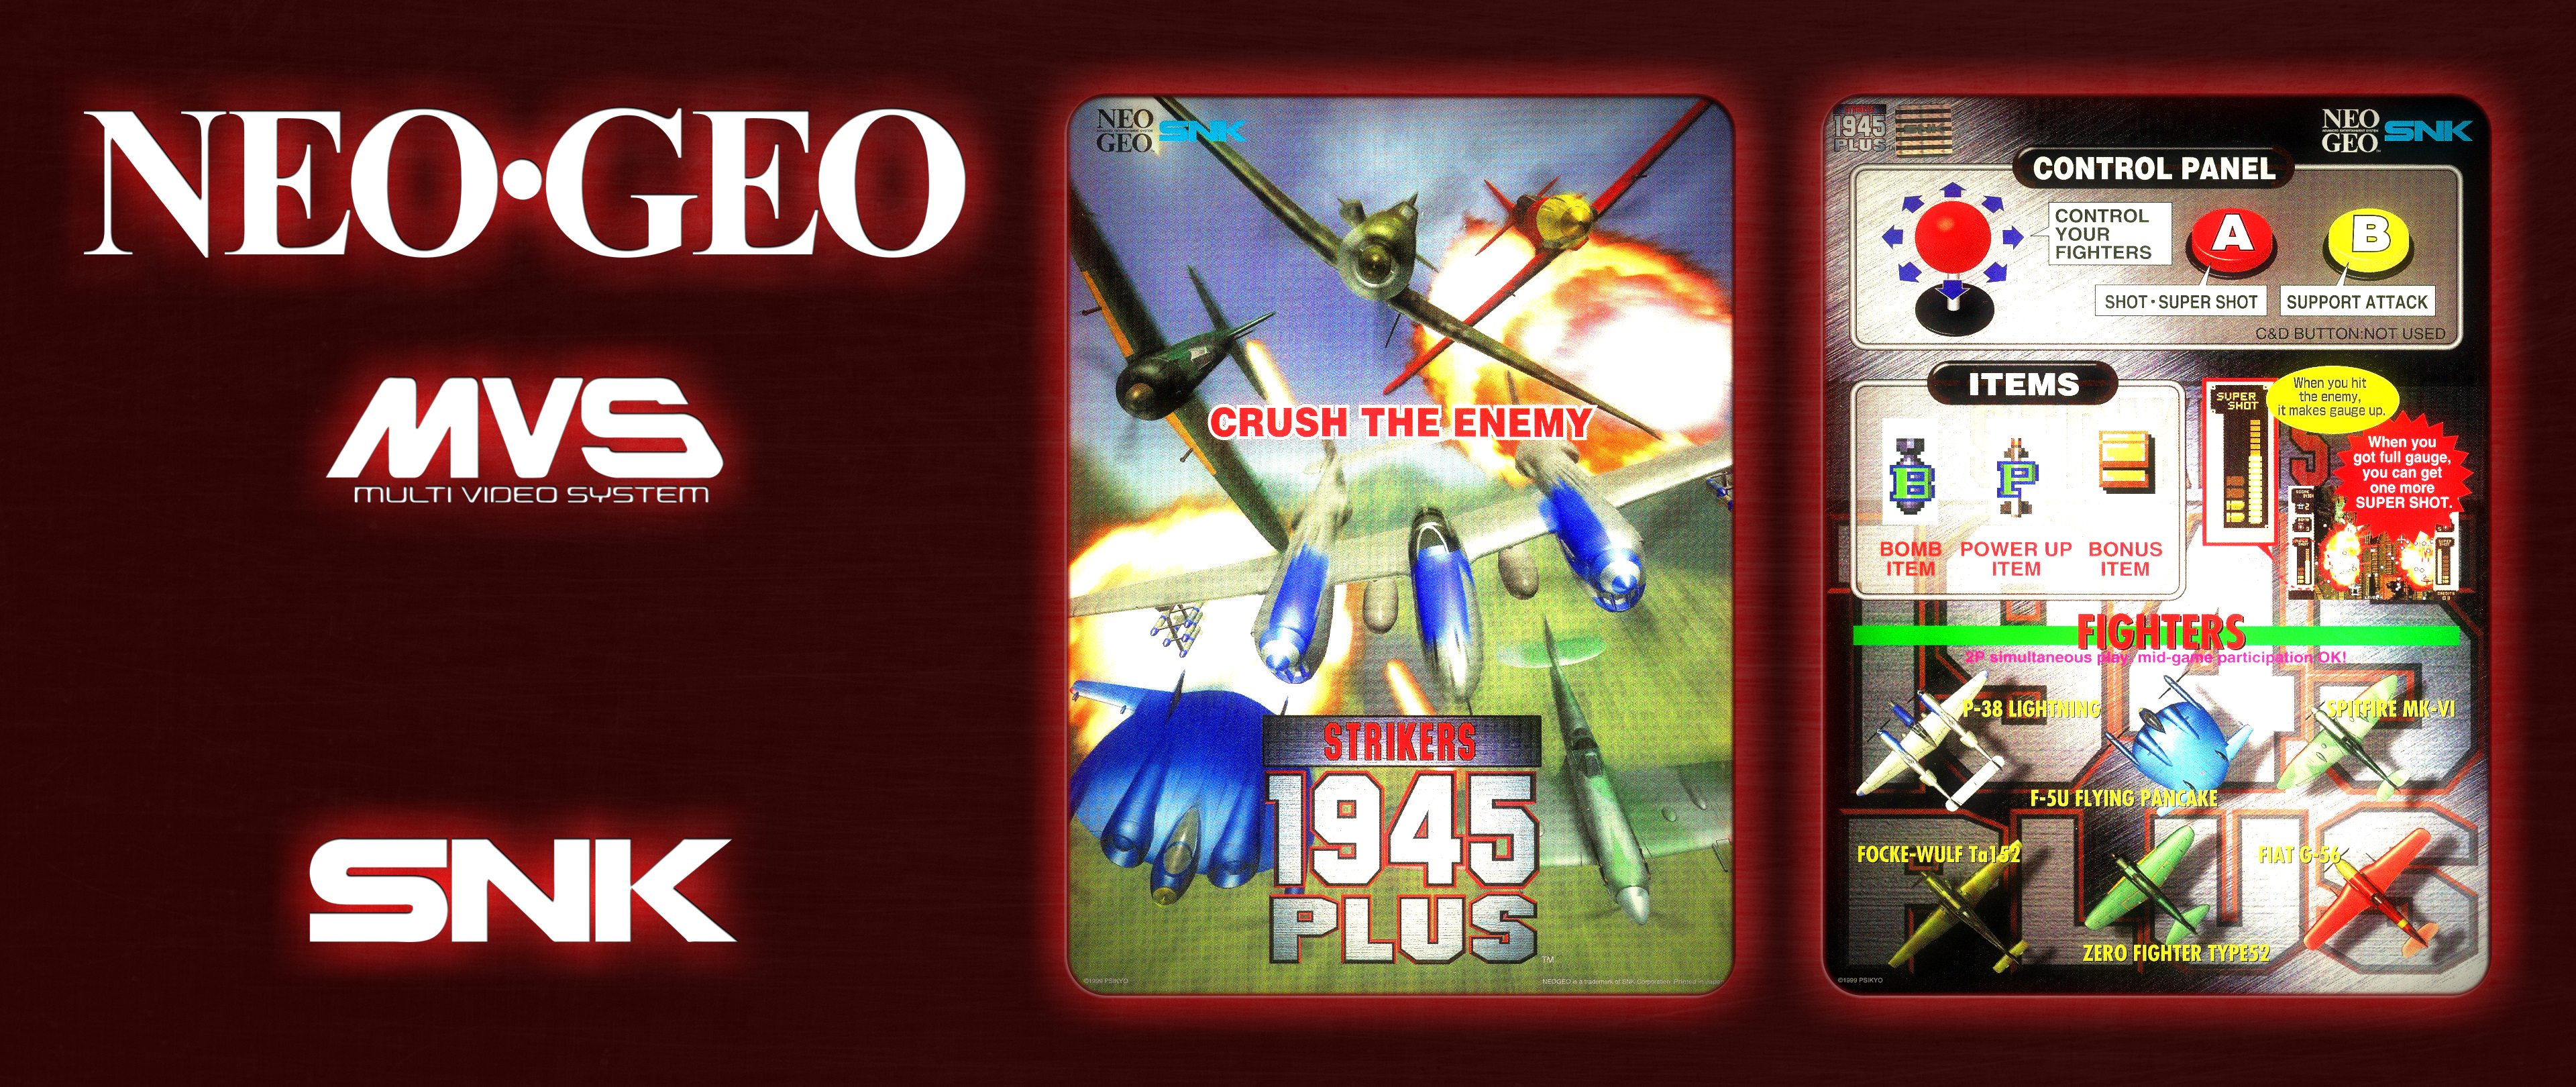 Strikers 1945 Plus Details - LaunchBox Games Database